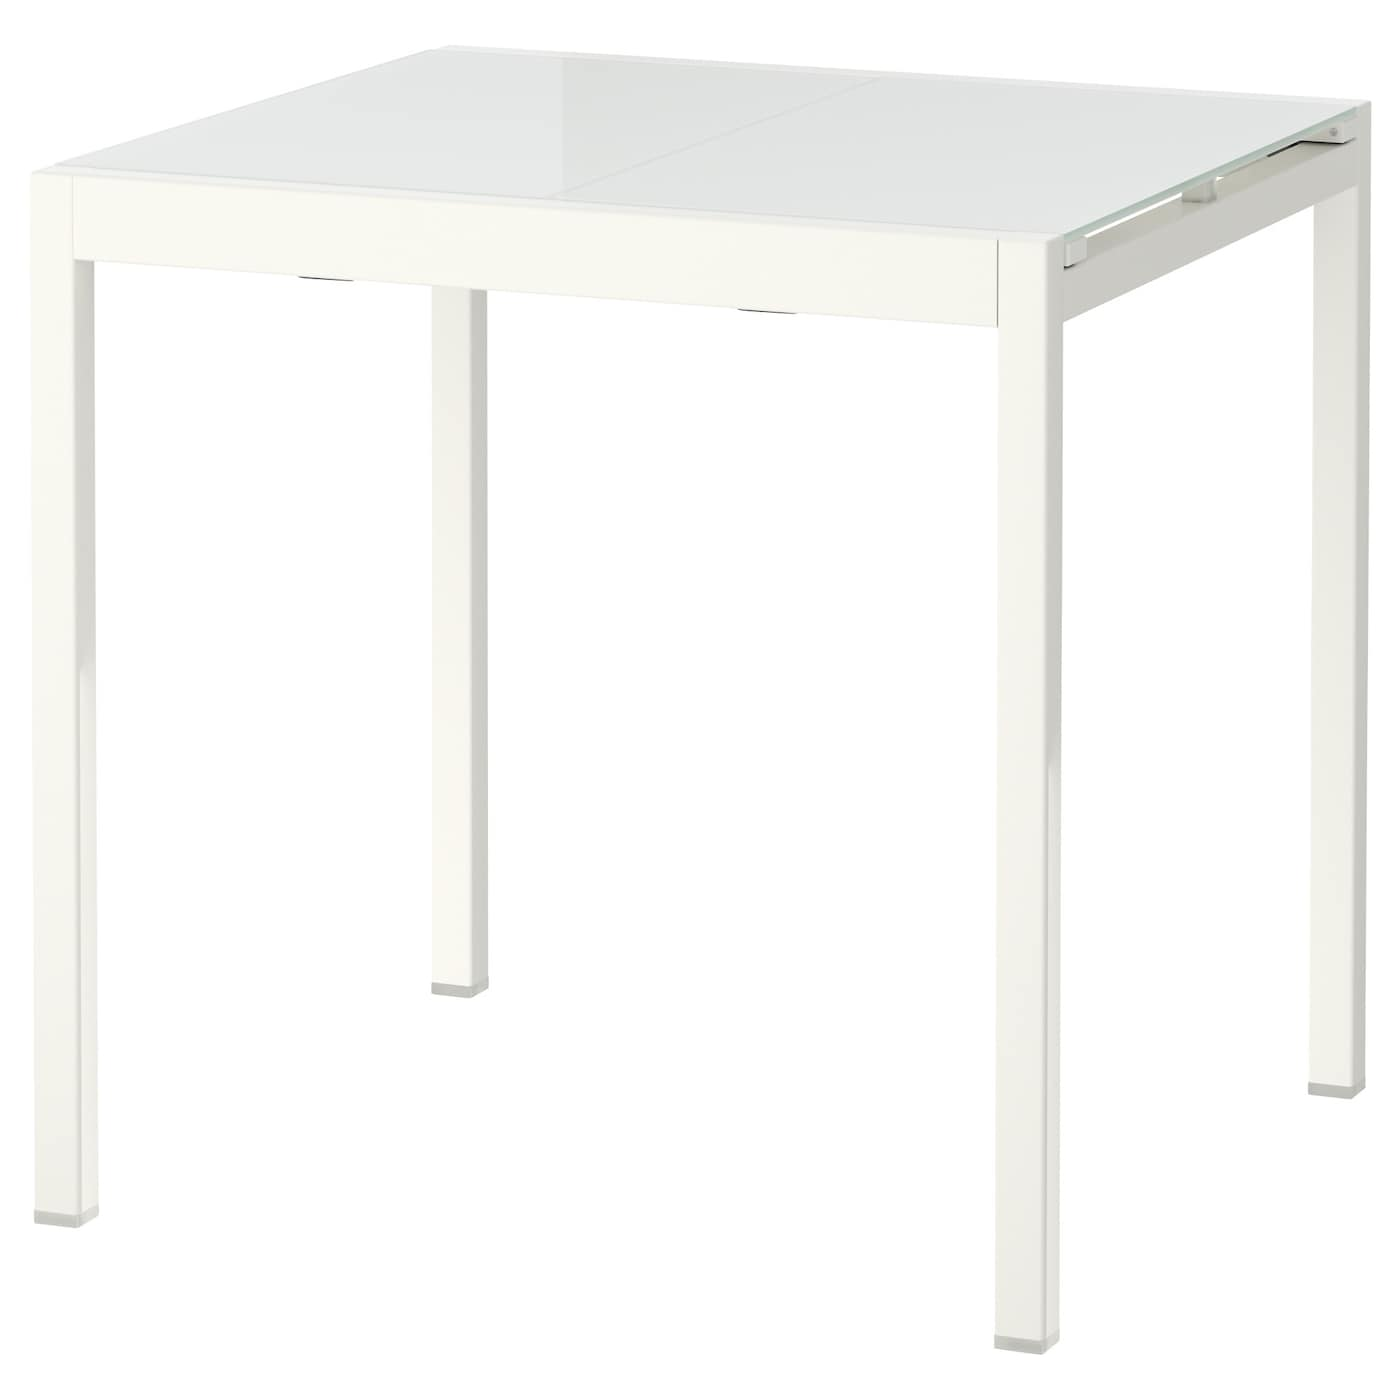 Glivarp extendable table white 75 115x70 cm ikea for Tables de nuit ikea